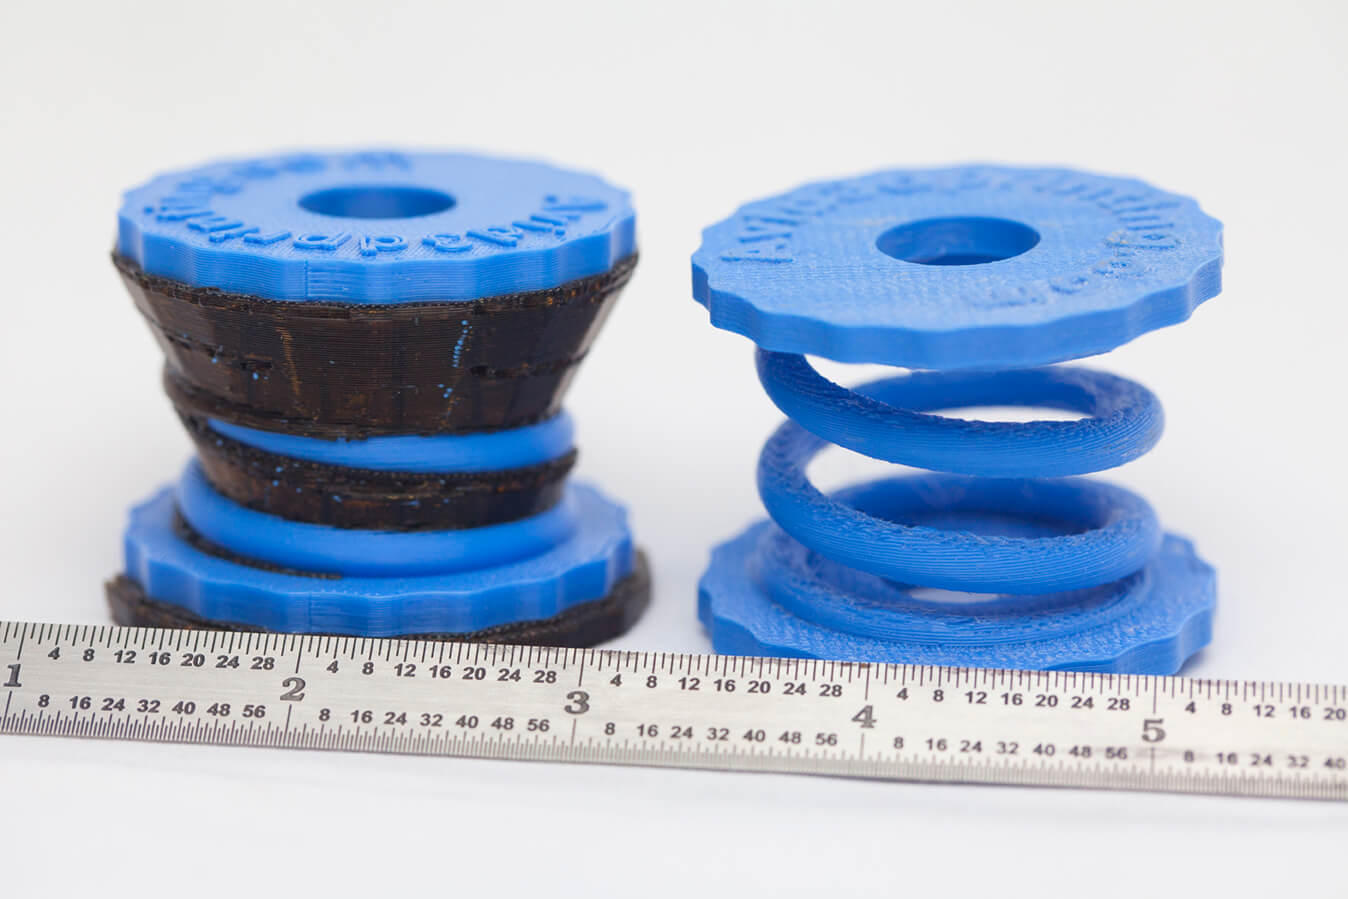 FDM 3D Printing with ABS and Soluble Support Materials